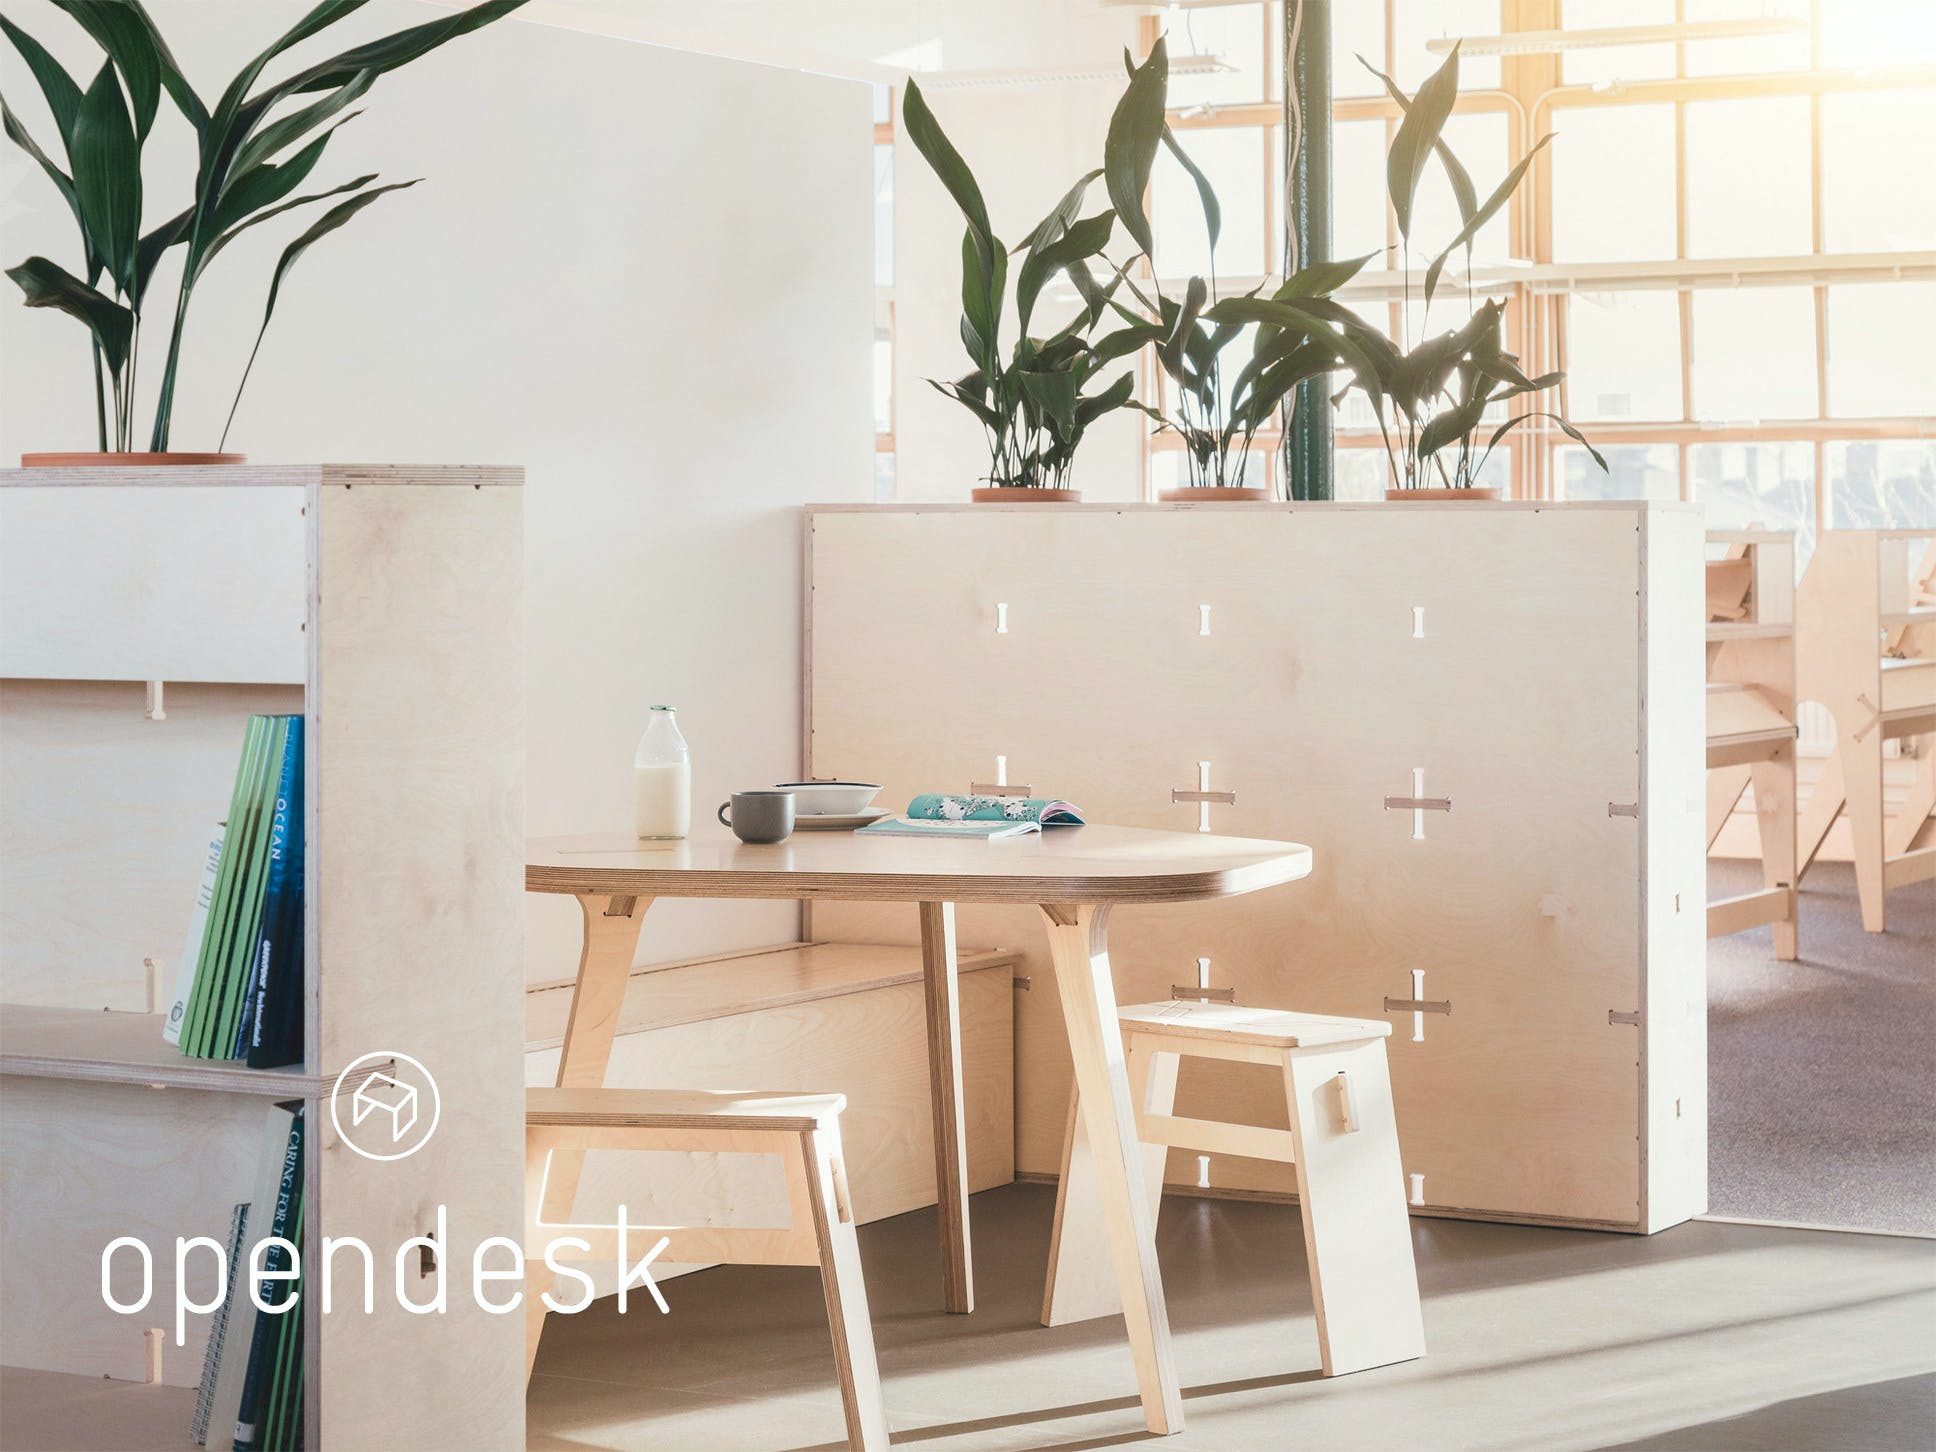 Opendesk Cracking The Production Code For Opensource Furniture - Source furniture